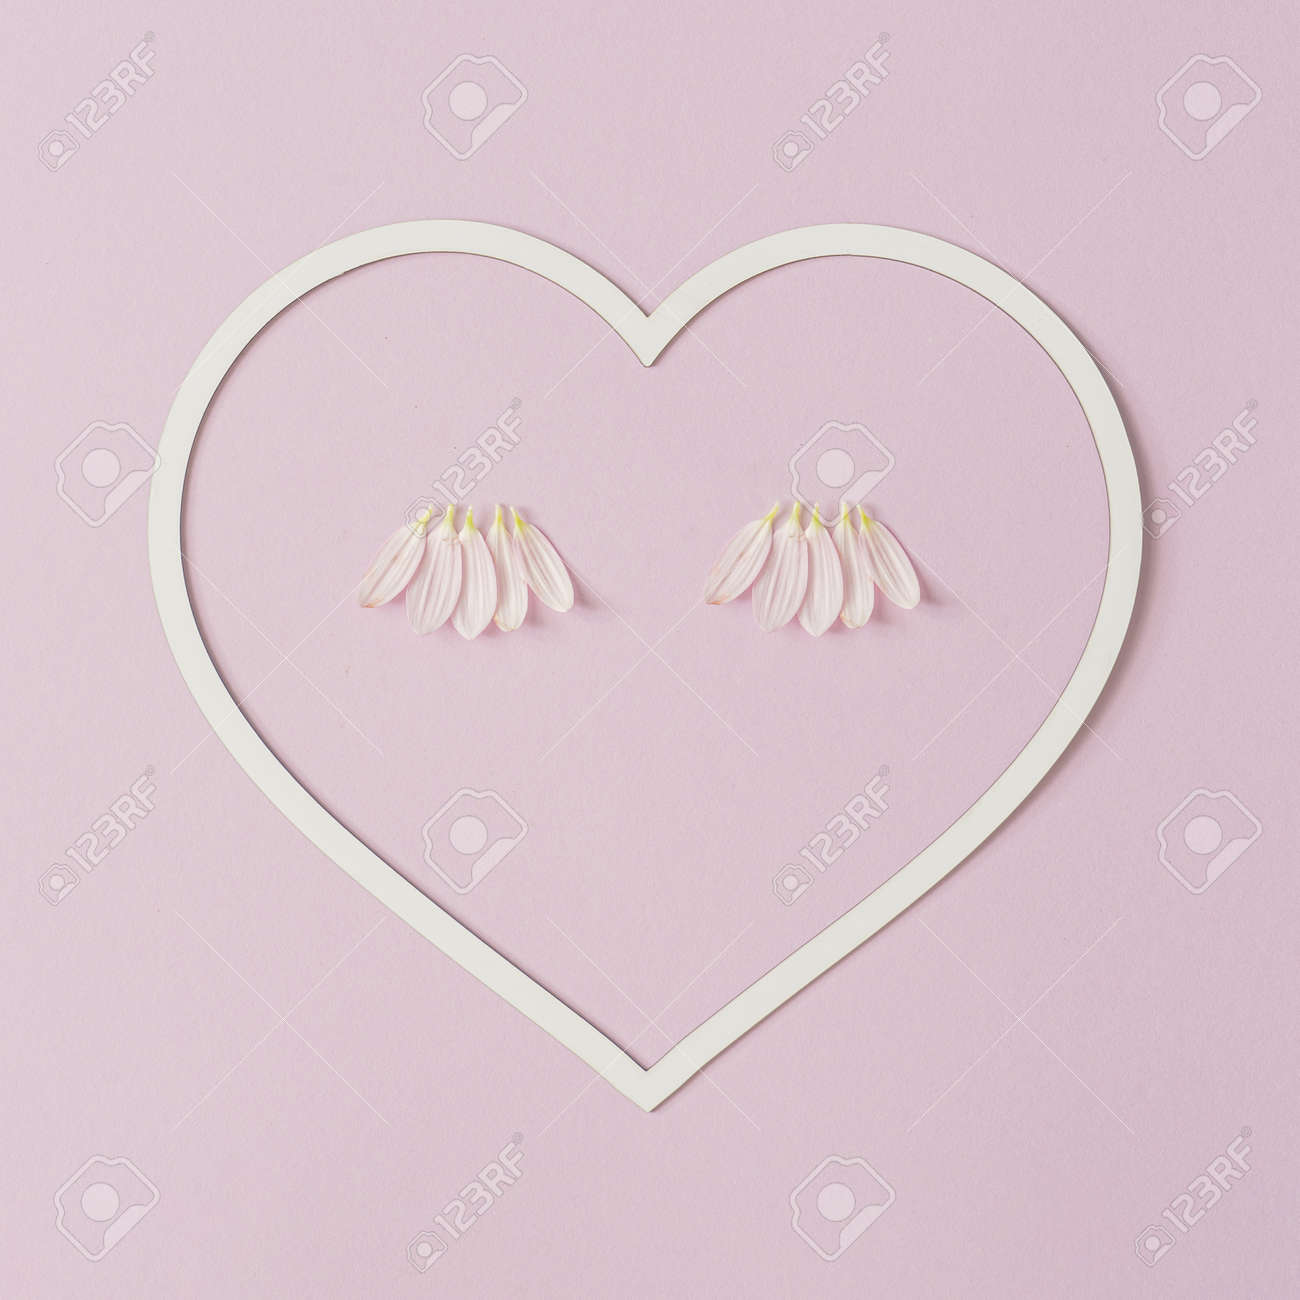 Heart shape copy space with pink daisy flower petals as eyelashes. Valentines or woman's day background design. Minimal flat lay nature. - 162580156